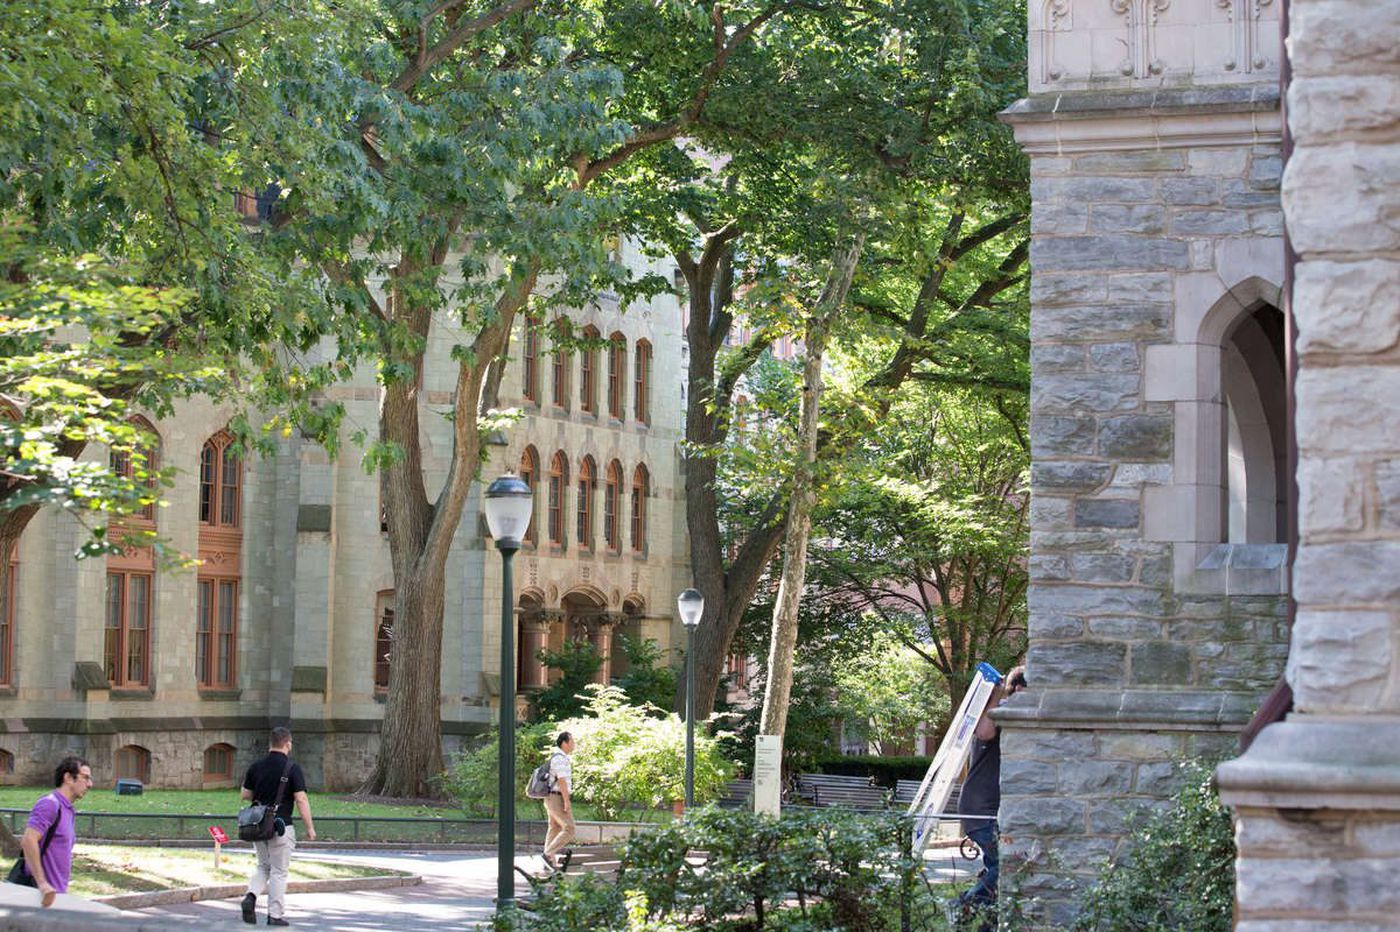 Penn law student found dead in residence